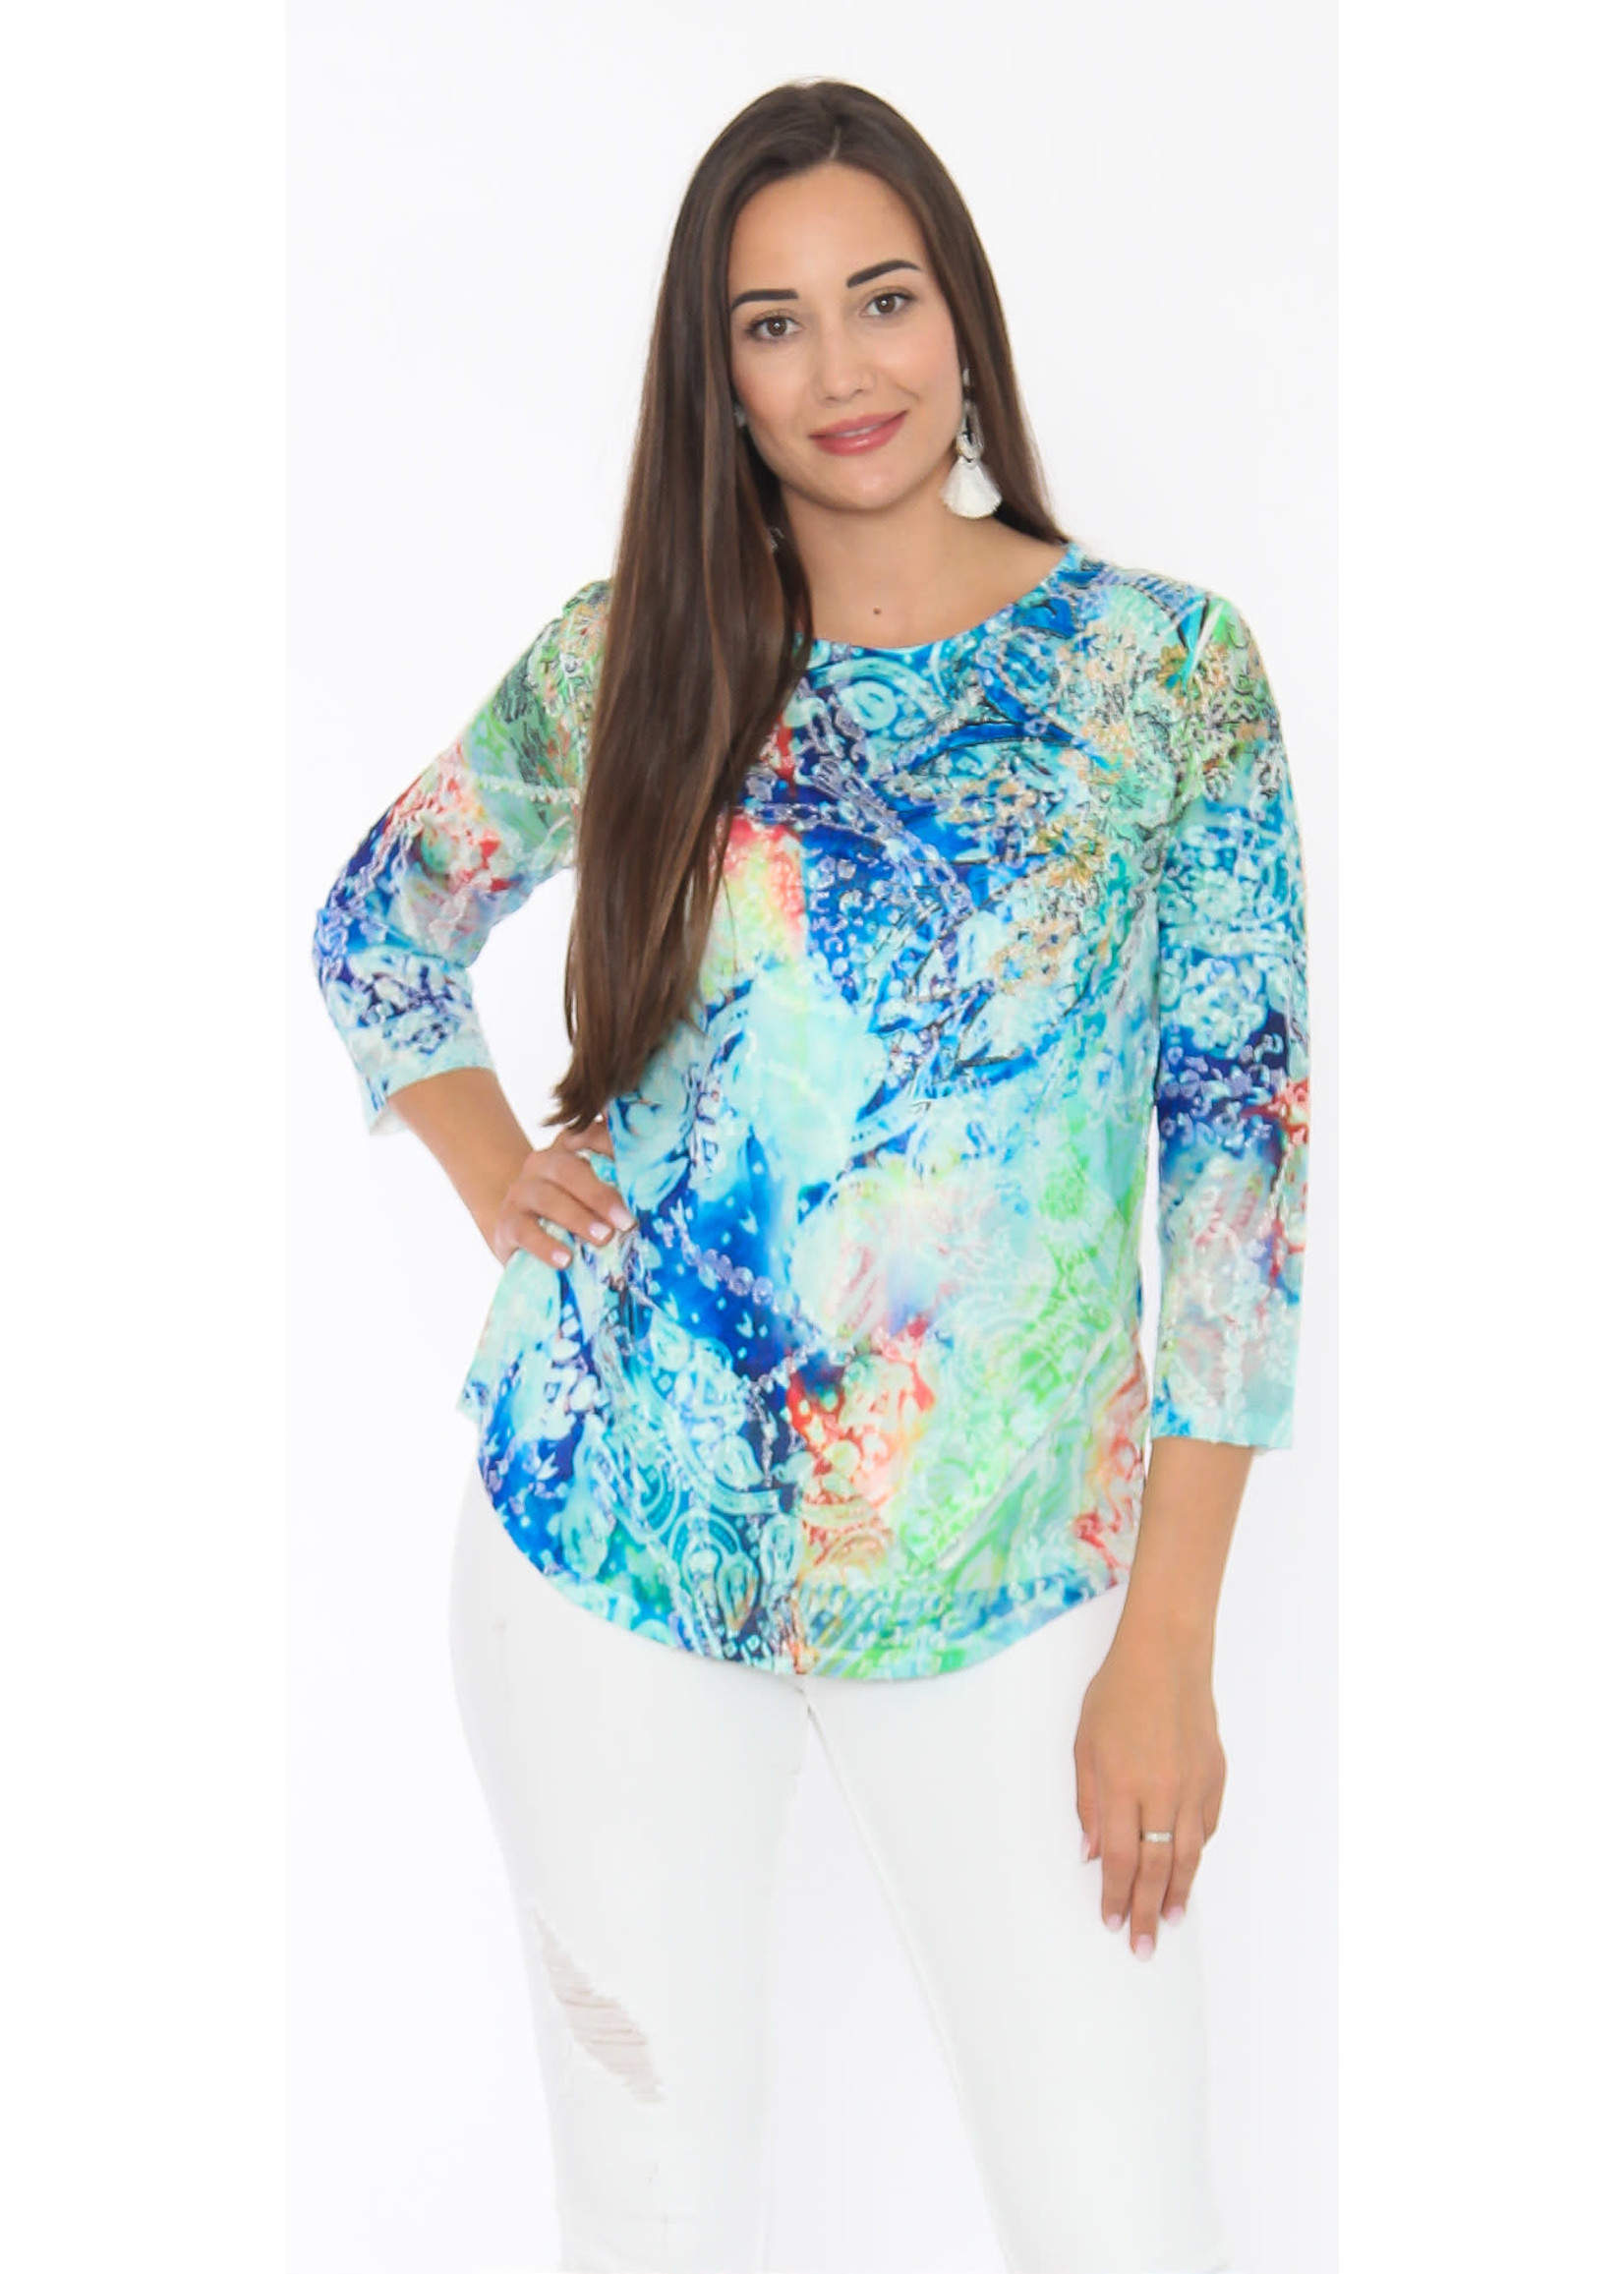 Captiva Saskia Lime Twist Top